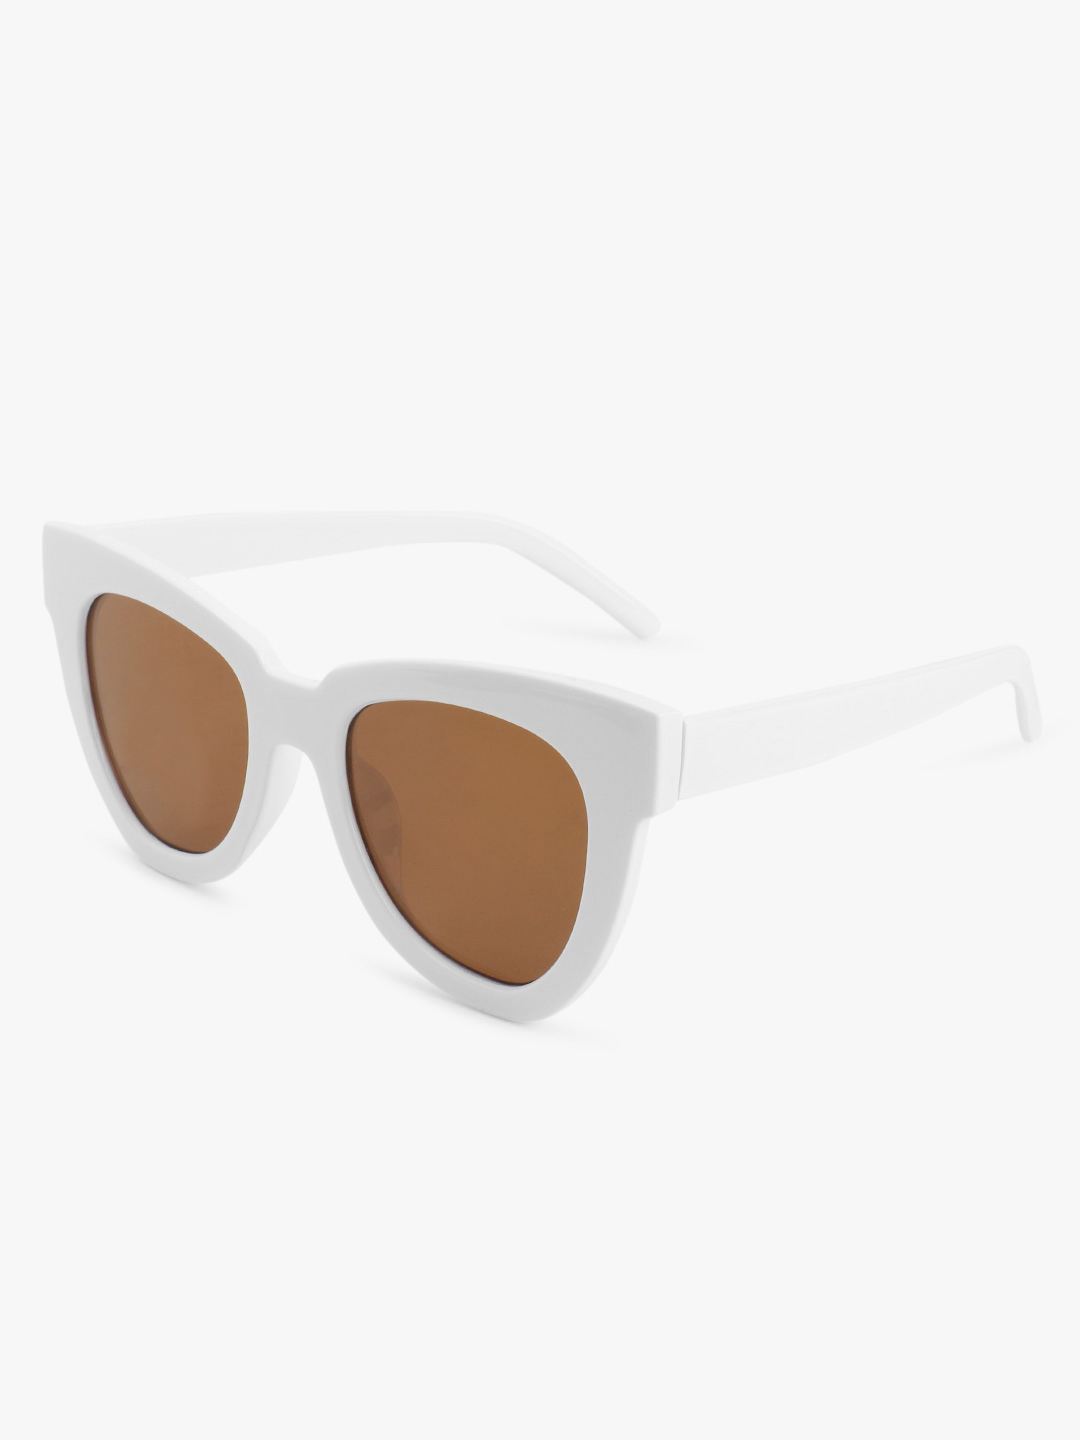 Sneak-a-Peek White Rimmed 70's Sunglasses 1